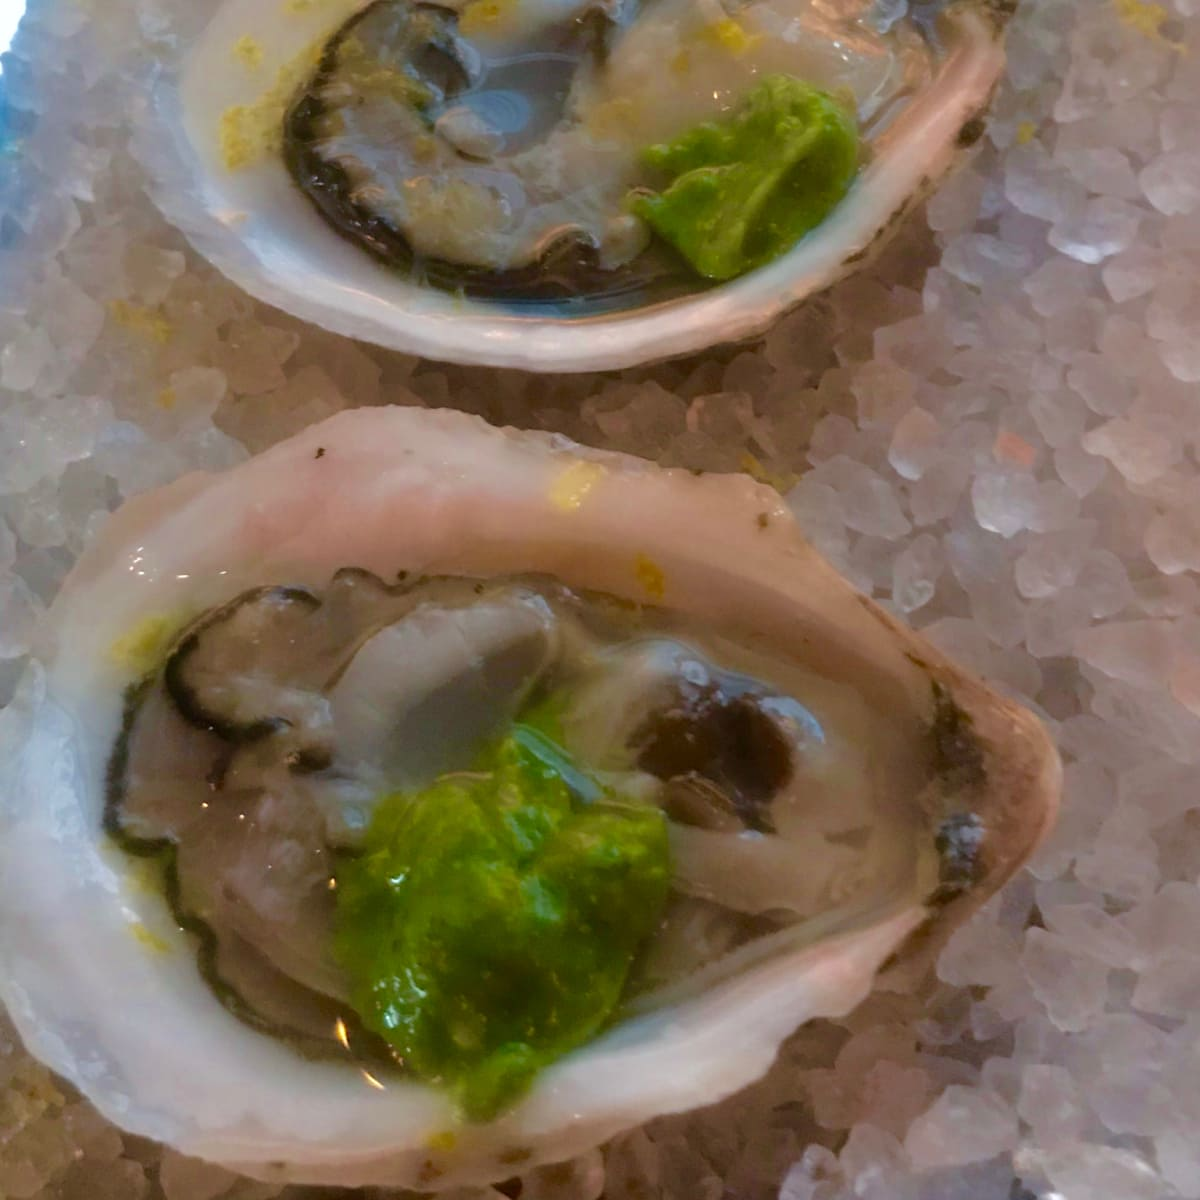 Cafe Annie raw oysters